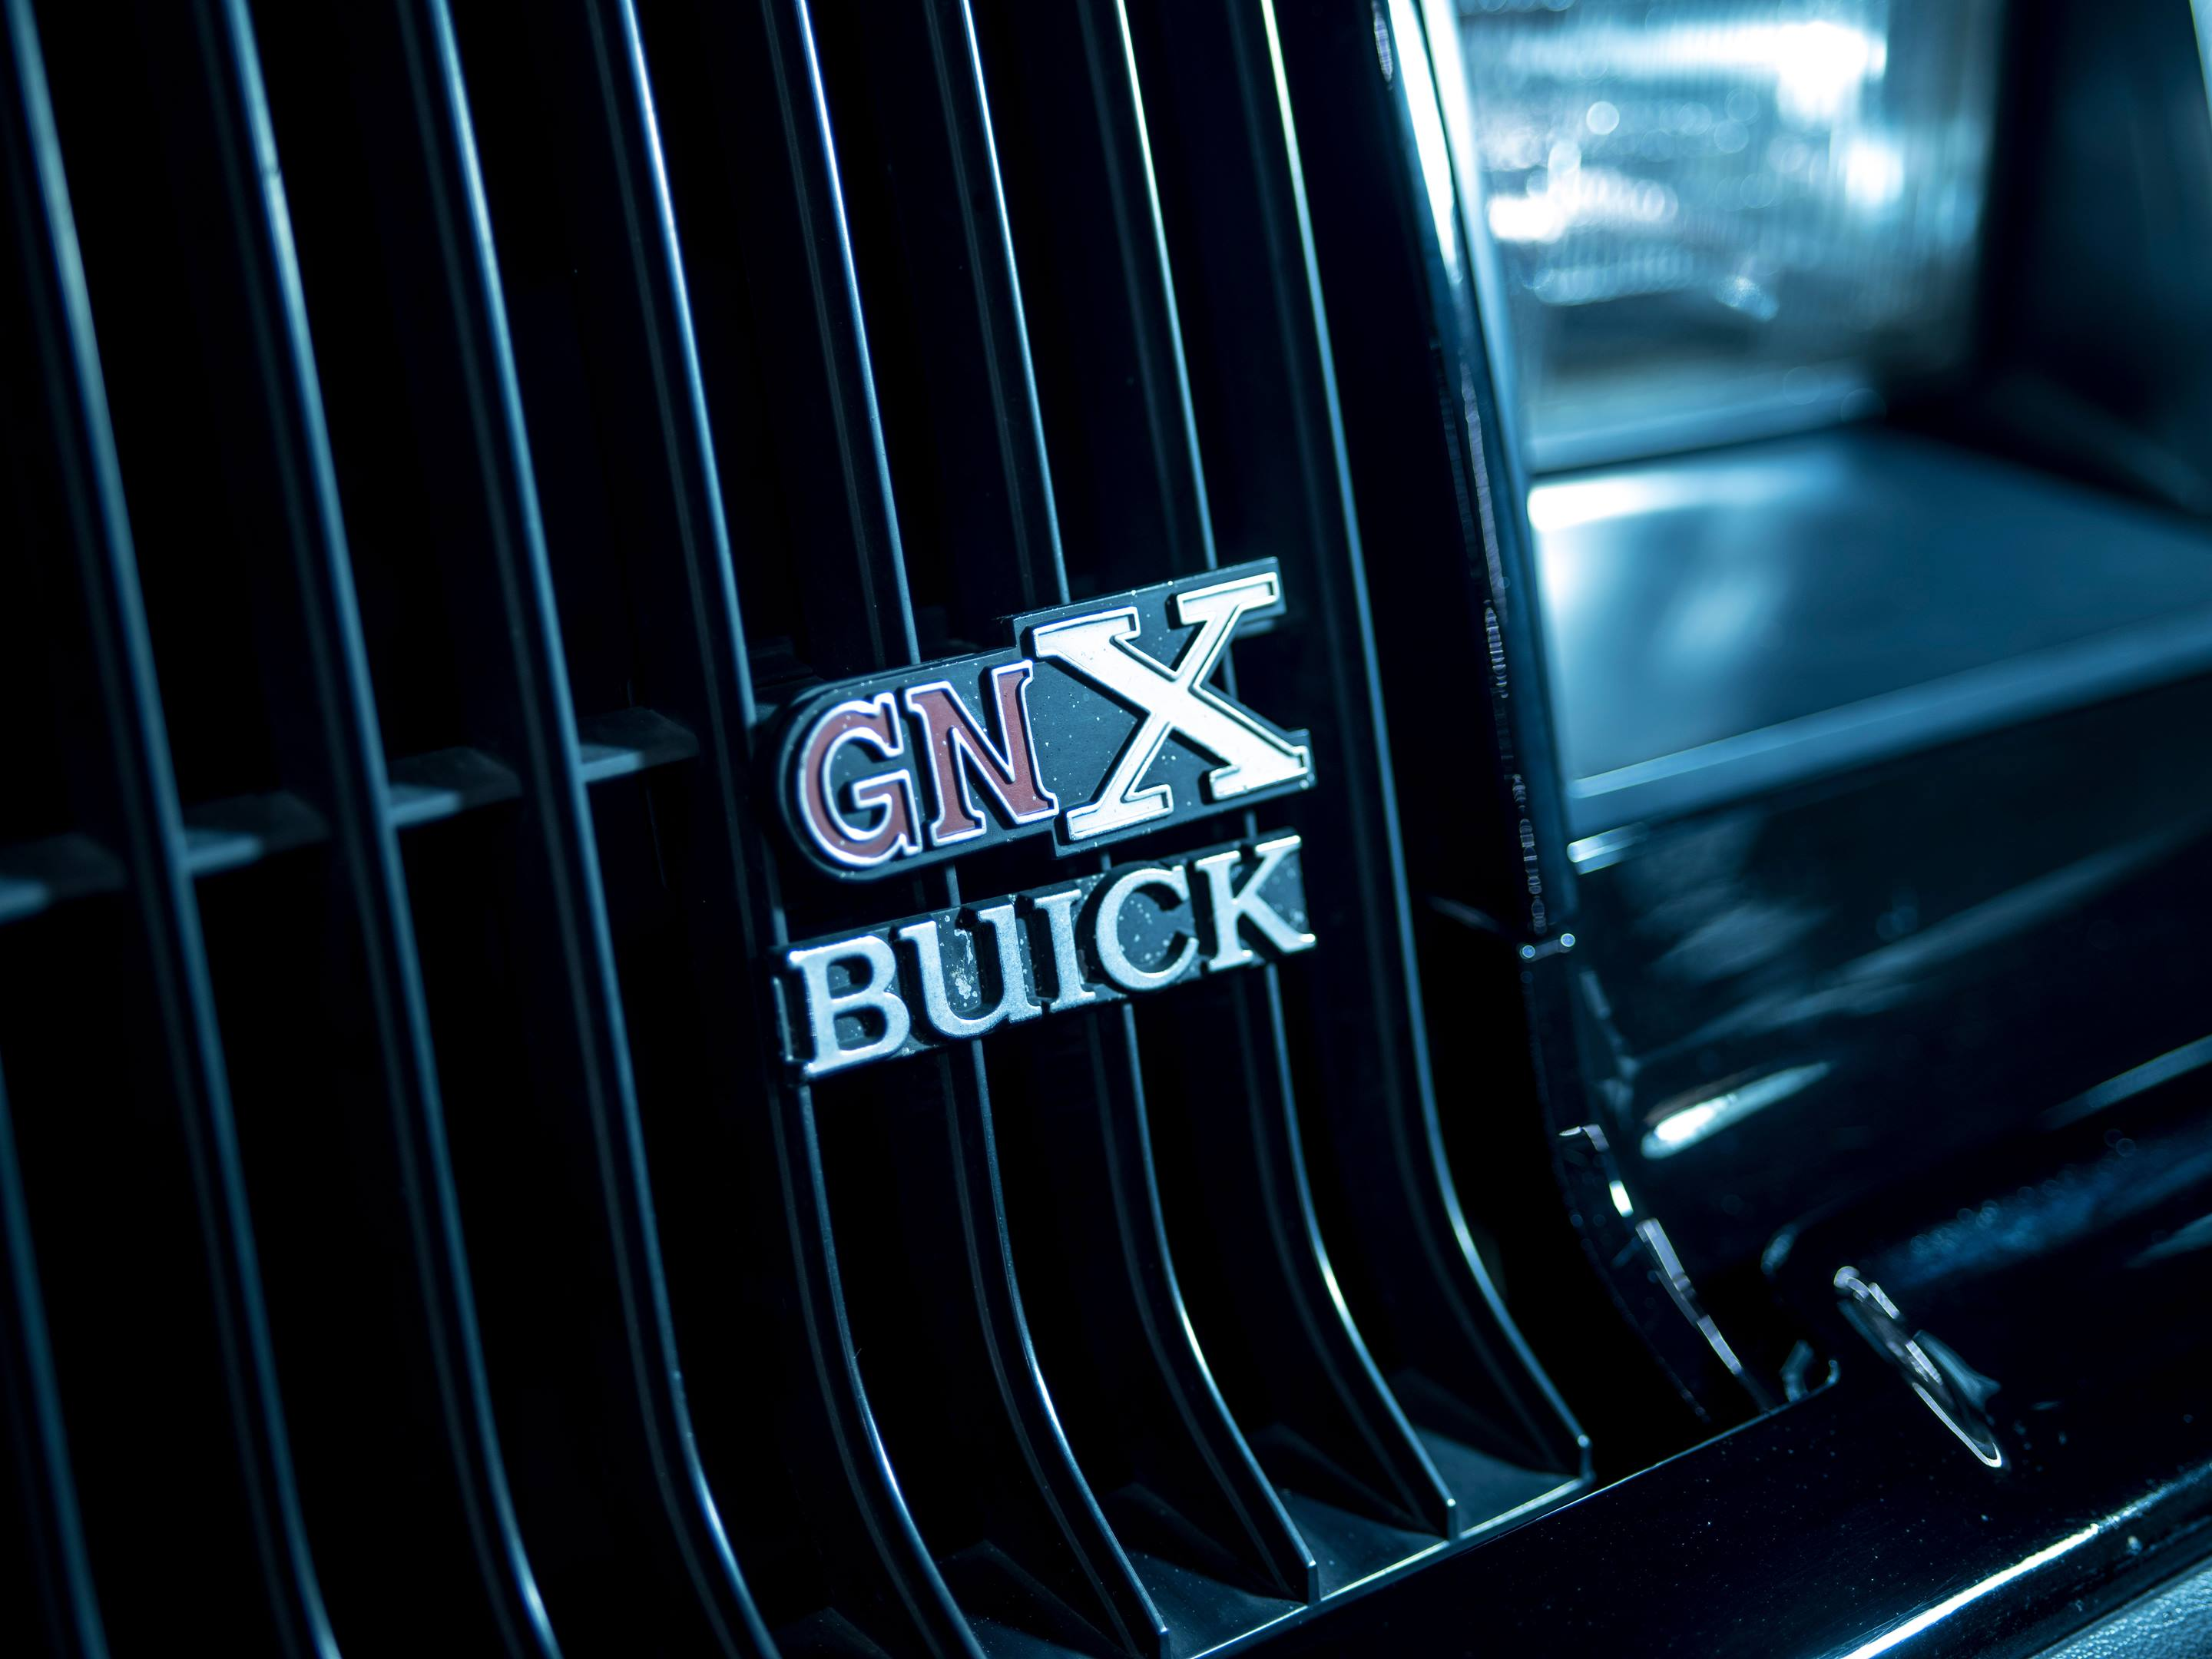 1987 Buick GNX badge